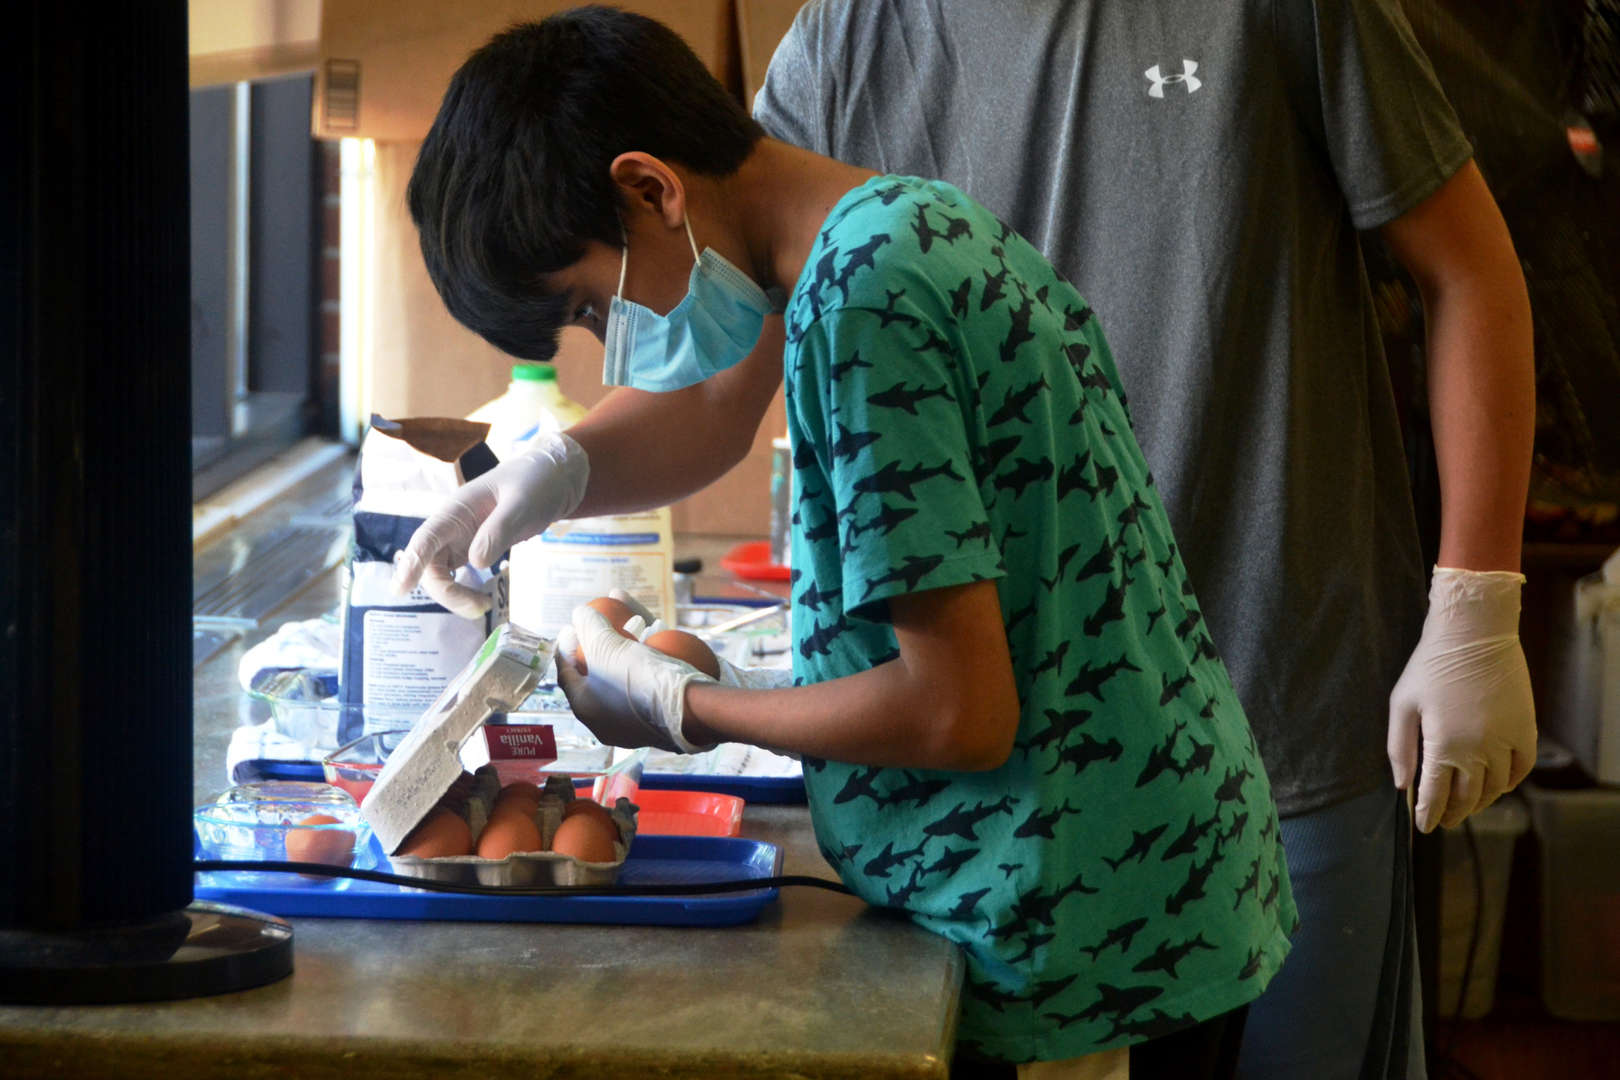 An eighth-grader picks out some eggs to make crepes.